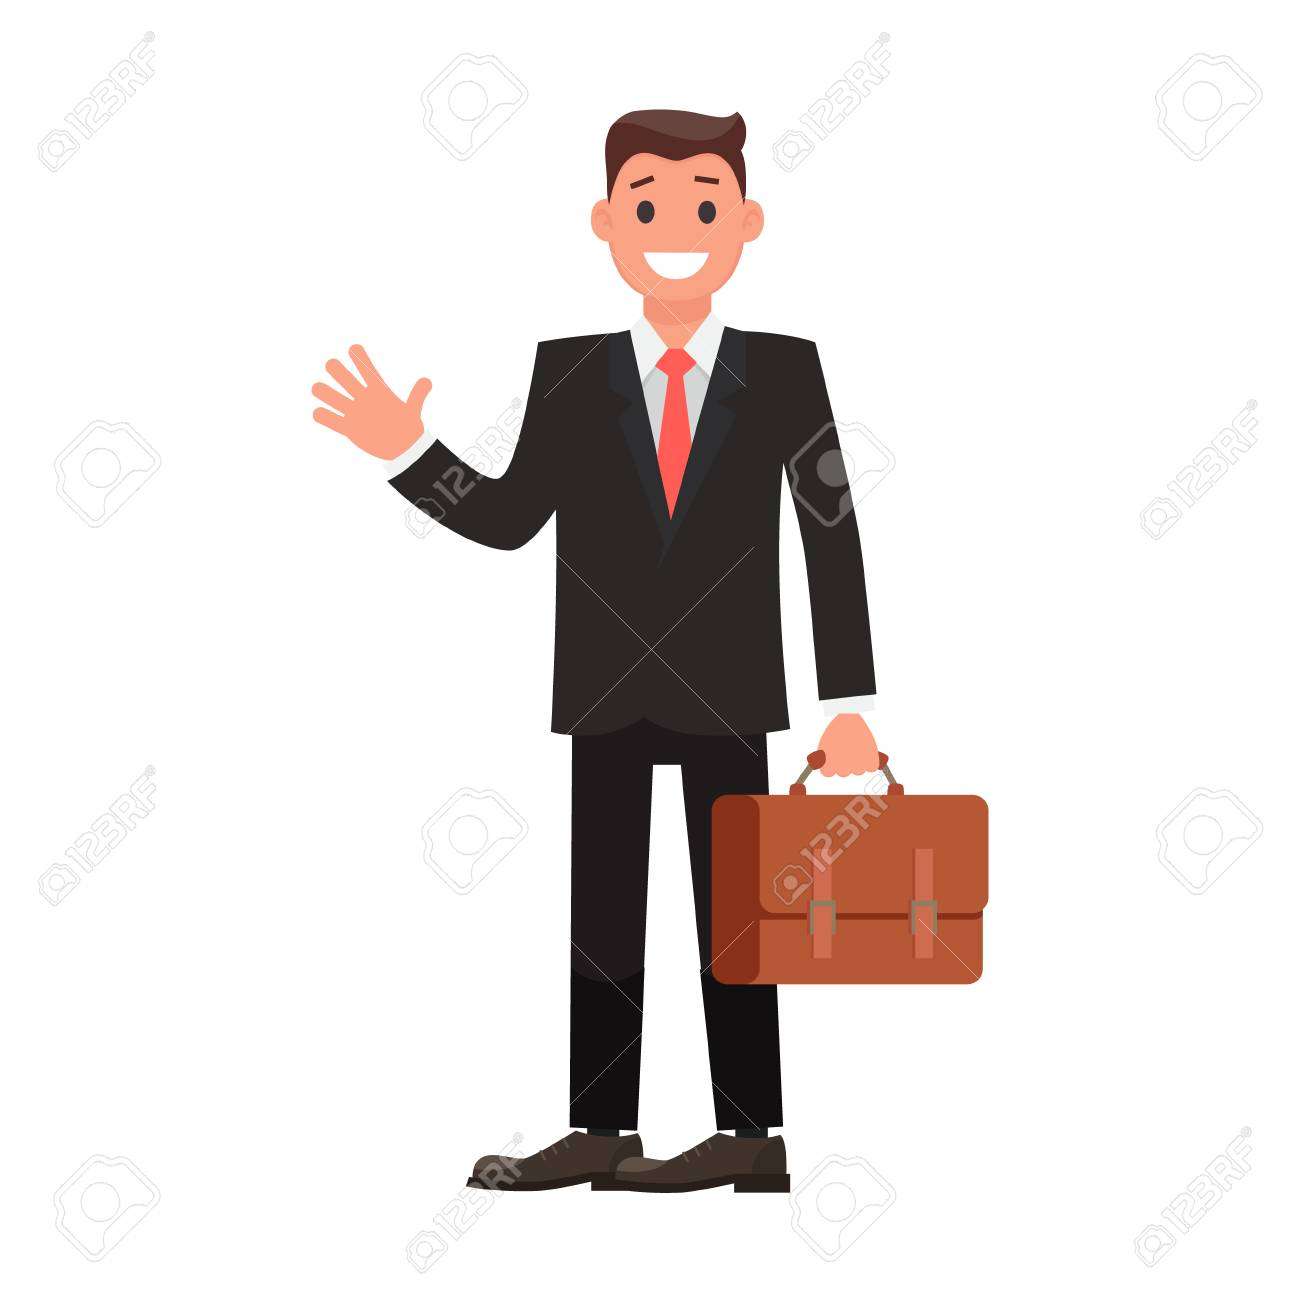 Flat Design Character Businessman with Briefcase. Vector illustration - 127175246